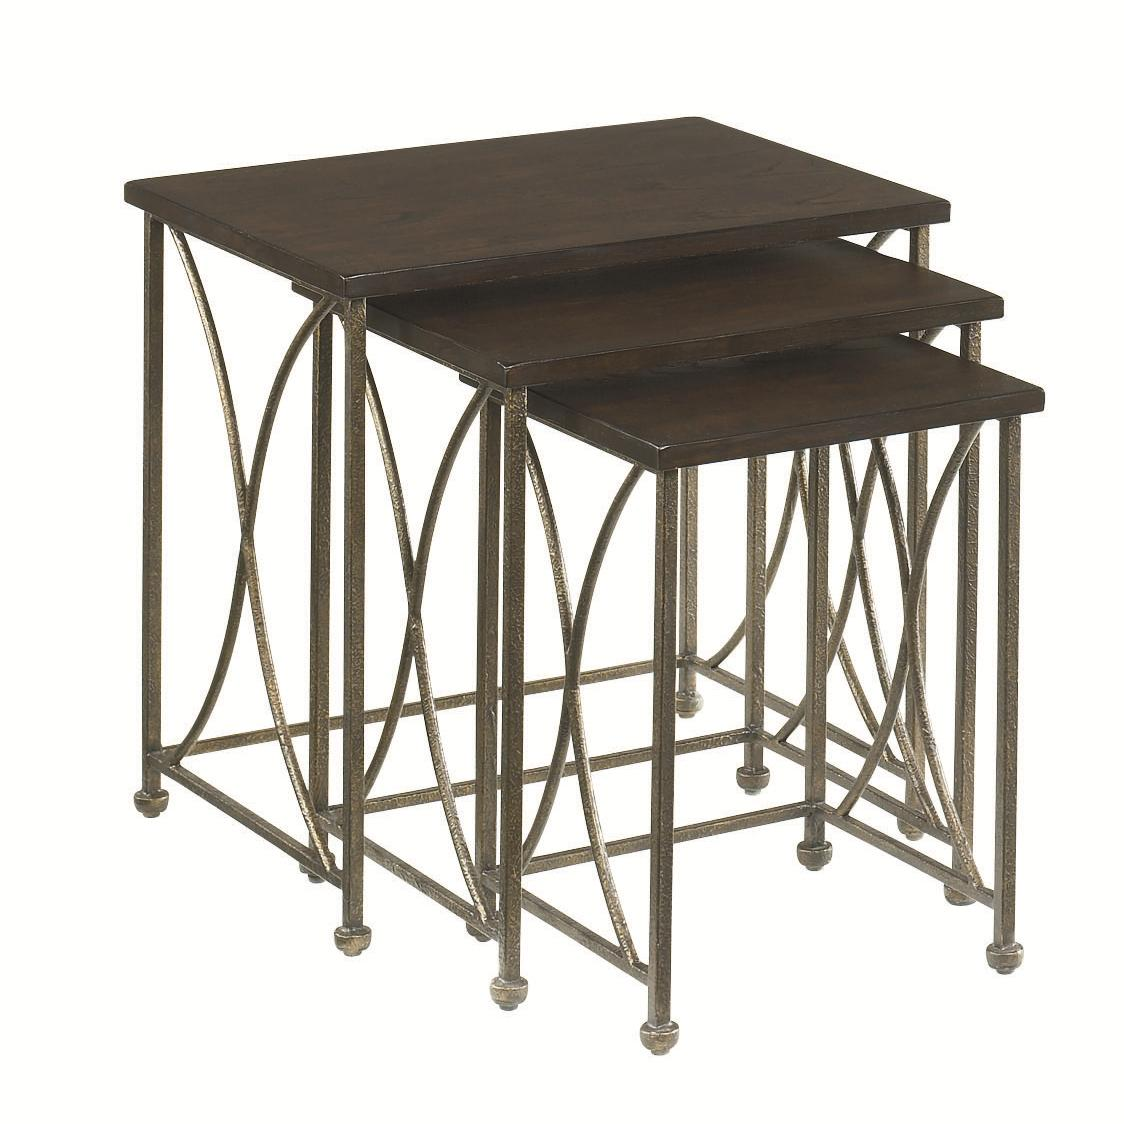 Hammary Hidden Treasures Rustic Nesting Tables - Item Number: 090-318